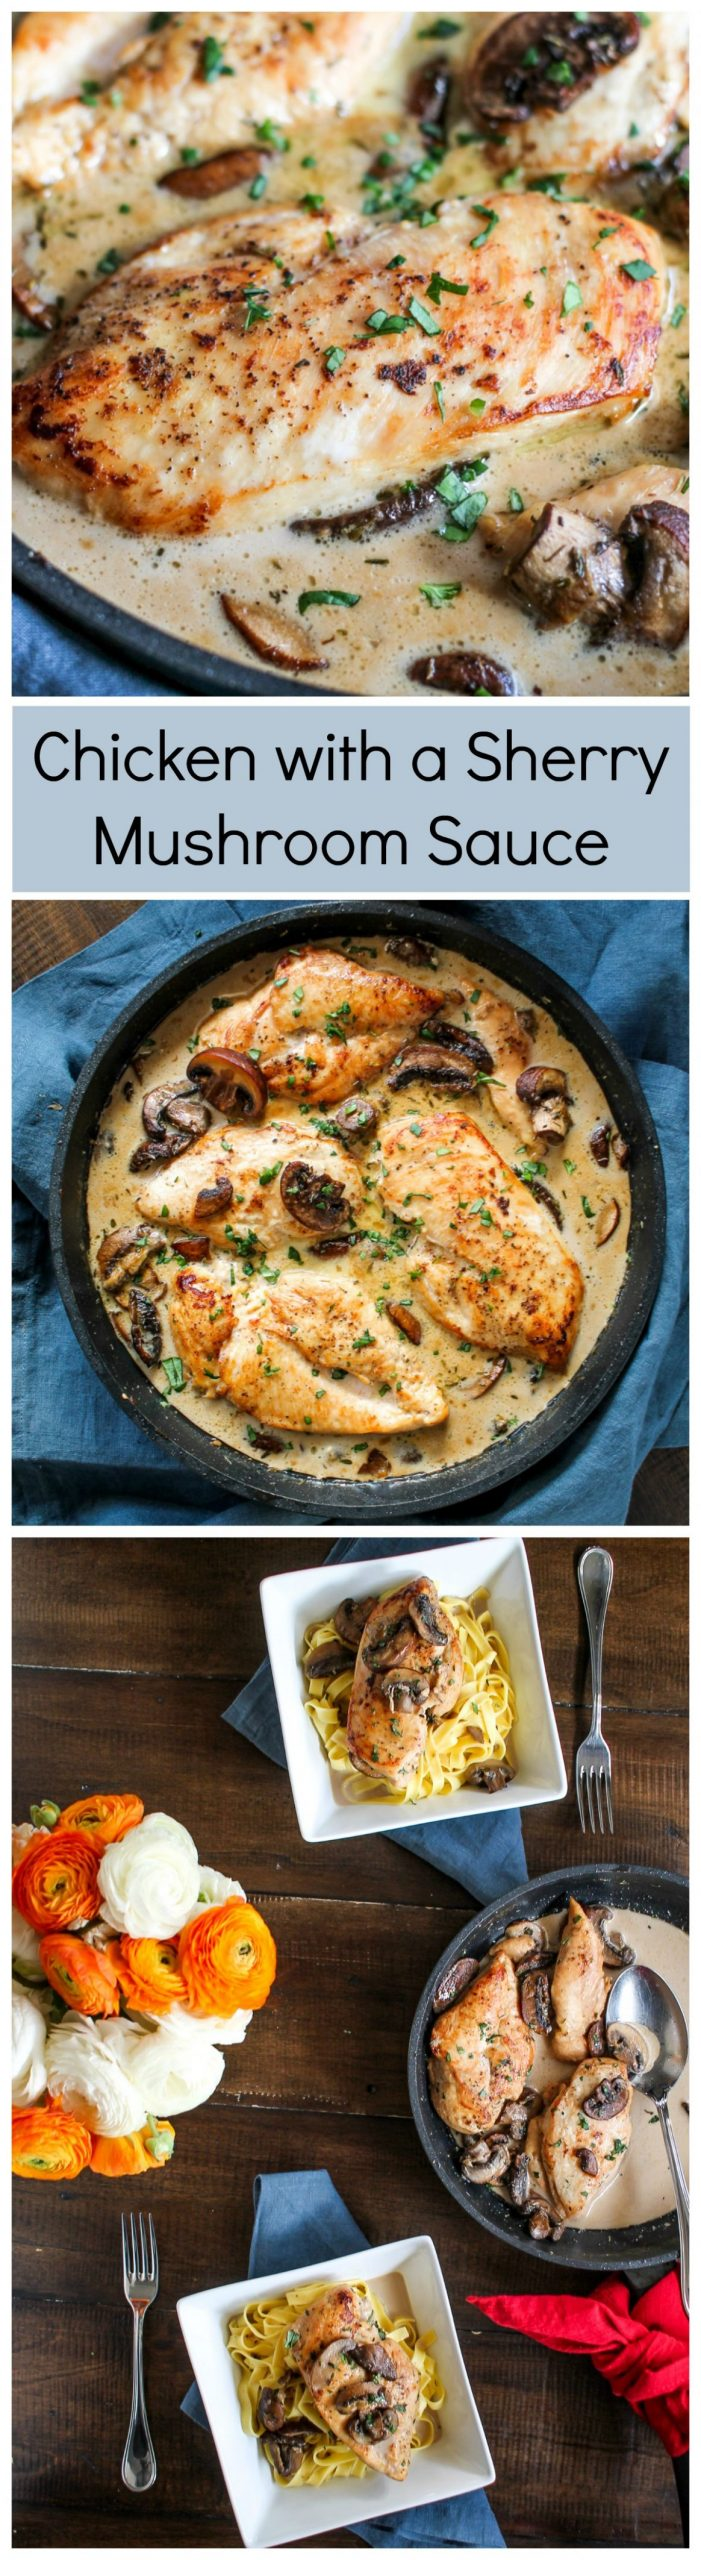 Chicken with a Sherry Mushroom Sauce - Recipes Using Cooking Sherry